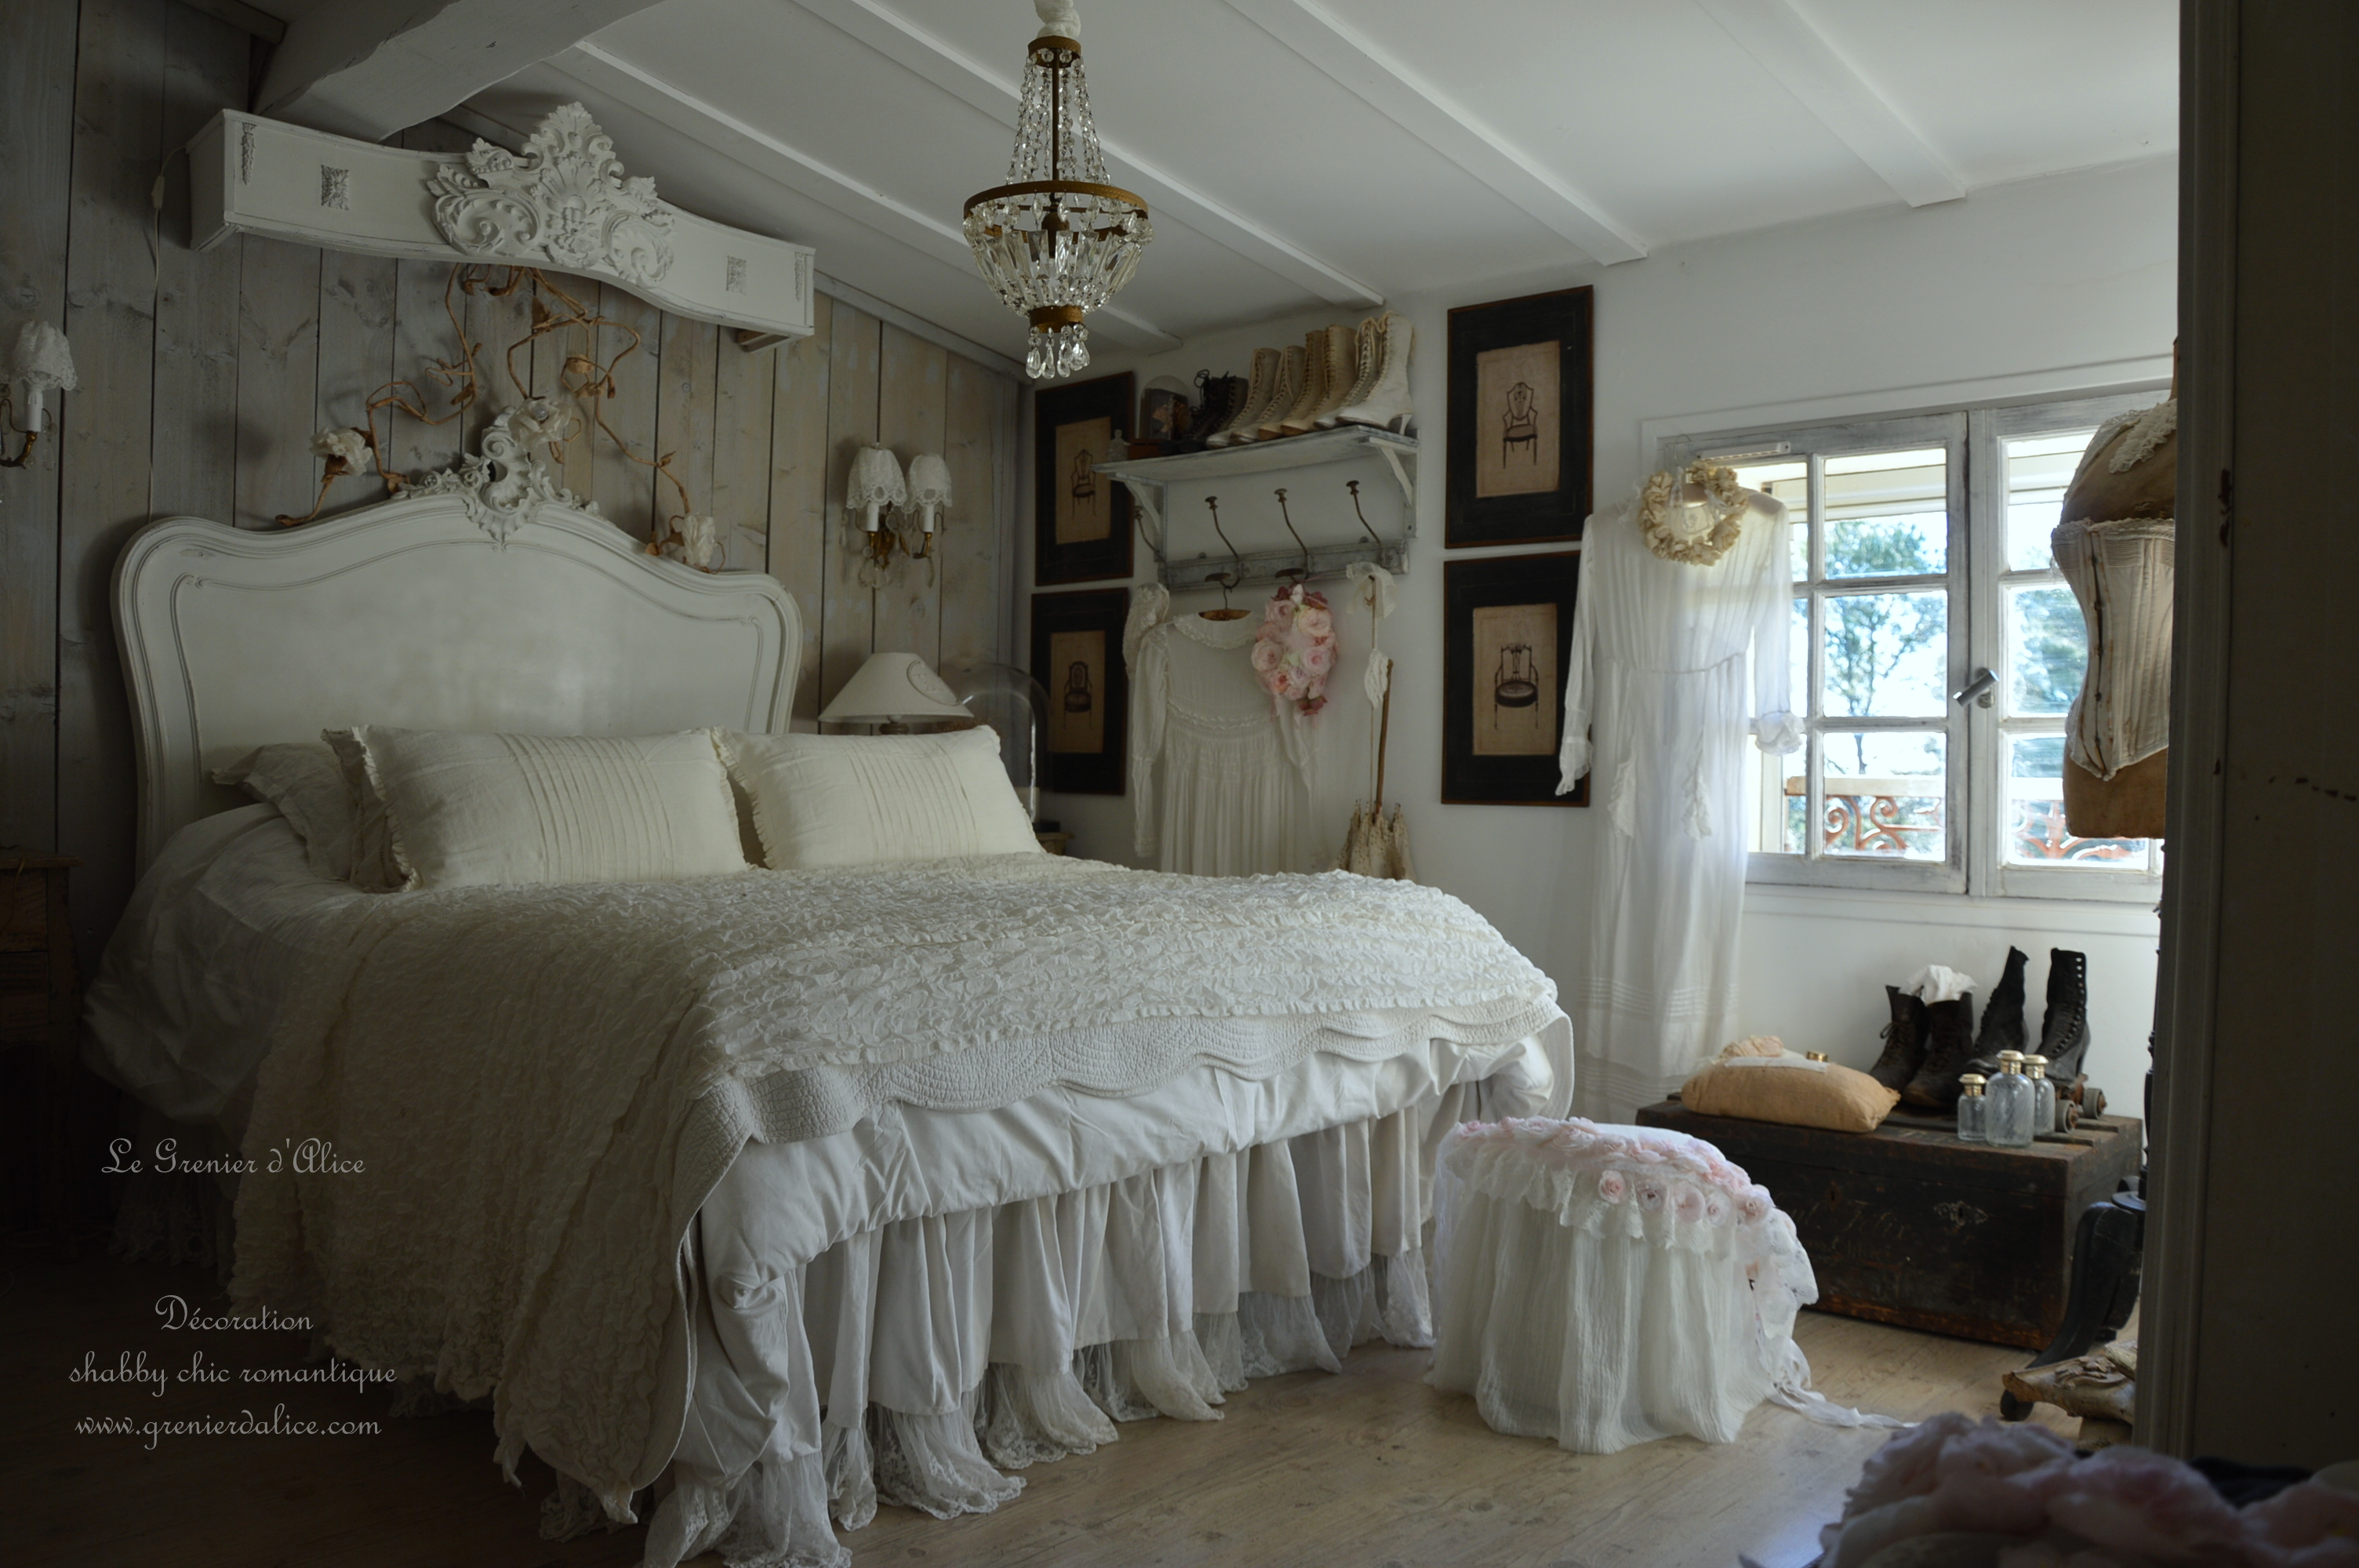 une chambre romantique shabby chic le grenier d 39 alice. Black Bedroom Furniture Sets. Home Design Ideas